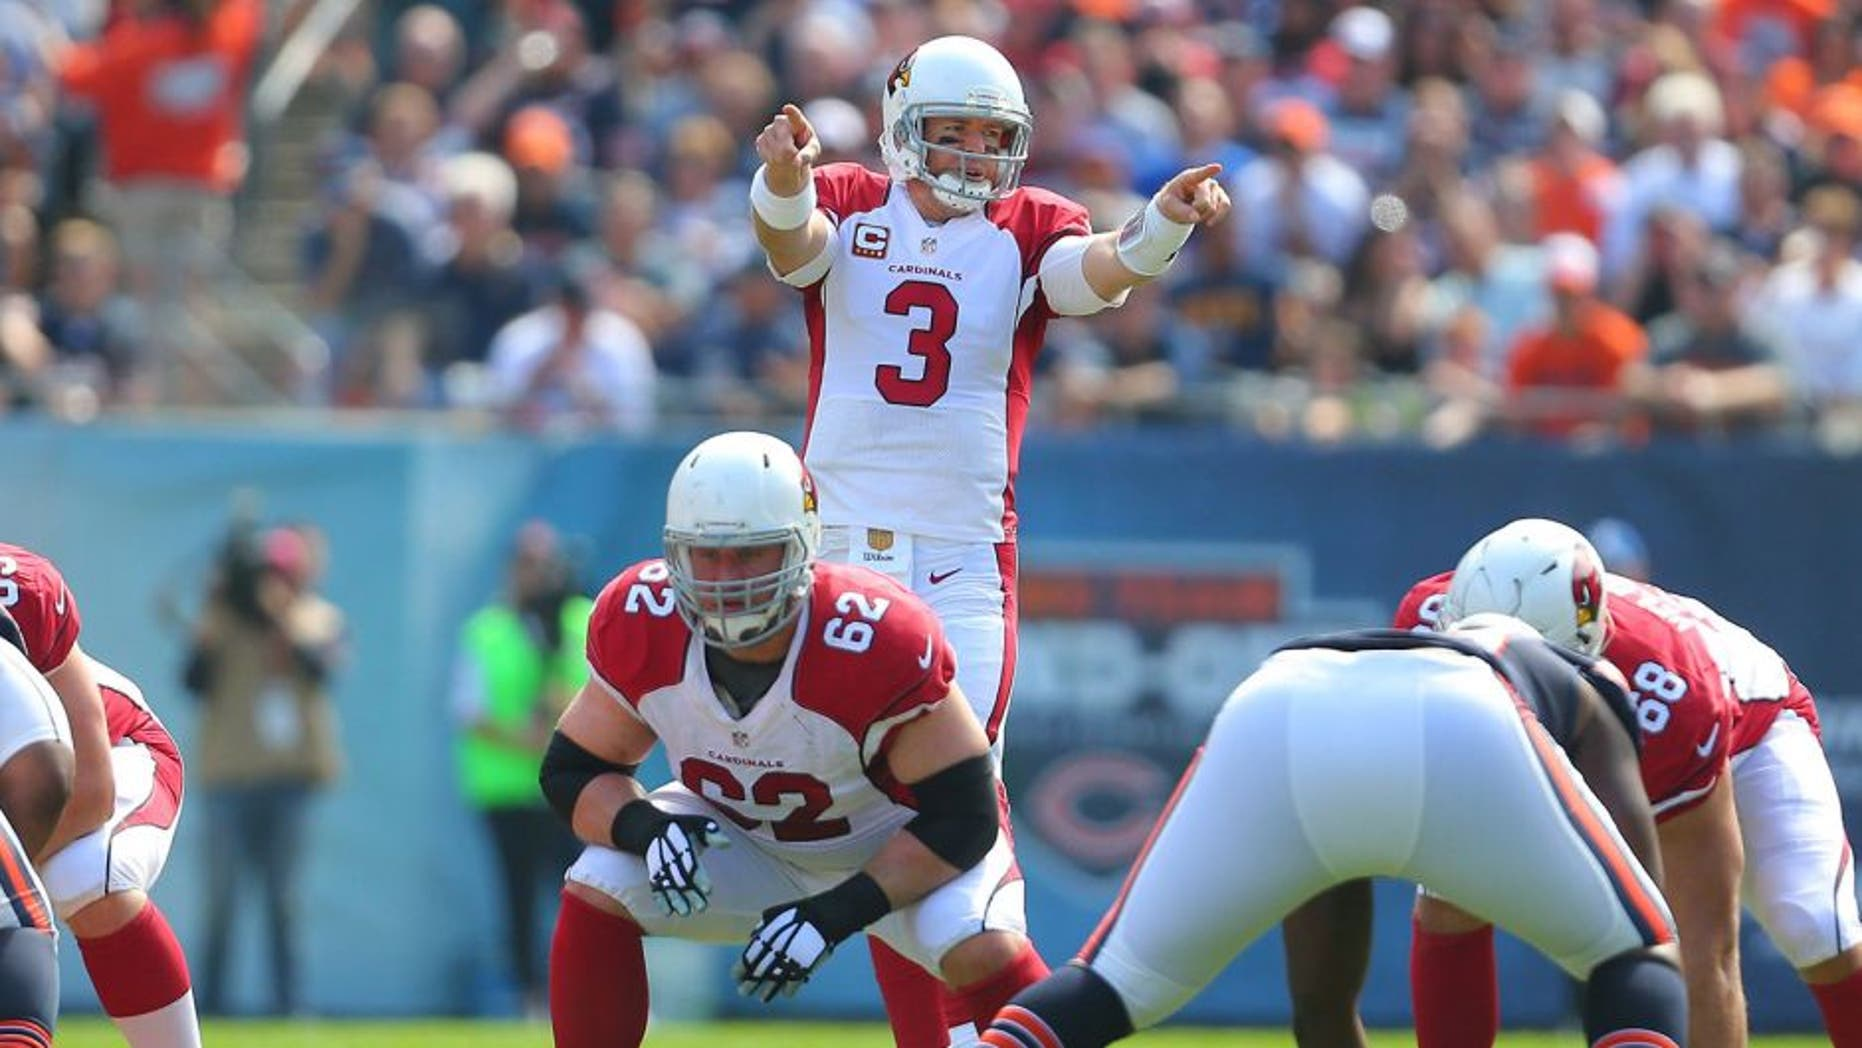 Sep 20, 2015; Chicago, IL, USA; Arizona Cardinals quarterback Carson Palmer (3) calls a play during the first half against the Chicago Bears at Soldier Field. Mandatory Credit: Dennis Wierzbicki-USA TODAY Sports